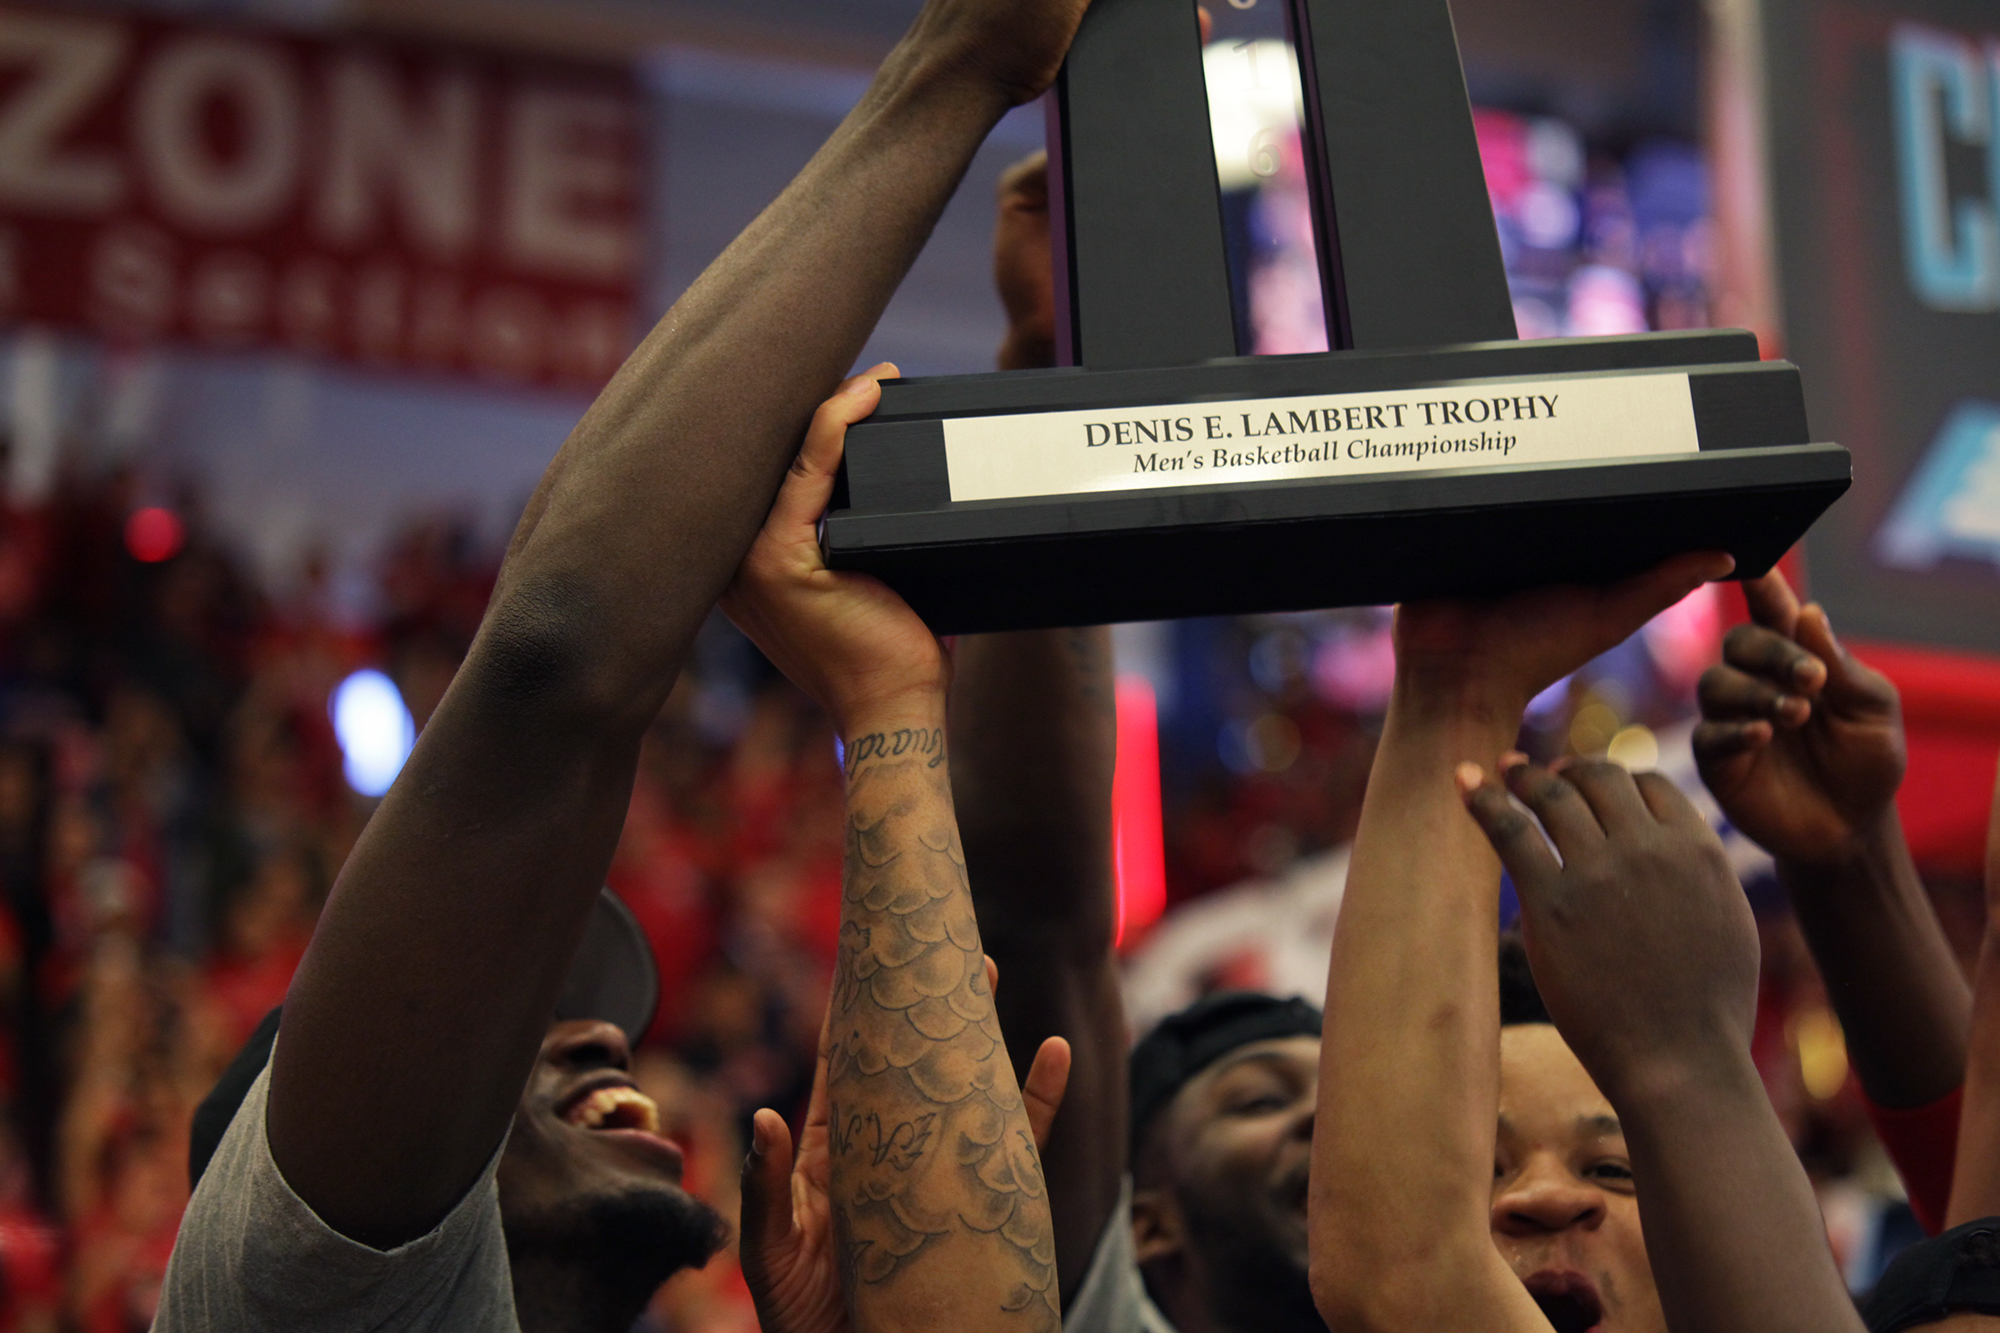 Members of the Stony Brook Men's Basketball team hold up their championship trophy after defeating Vermont.  CHRISTOPHER CAMERON/THE STATESMAN